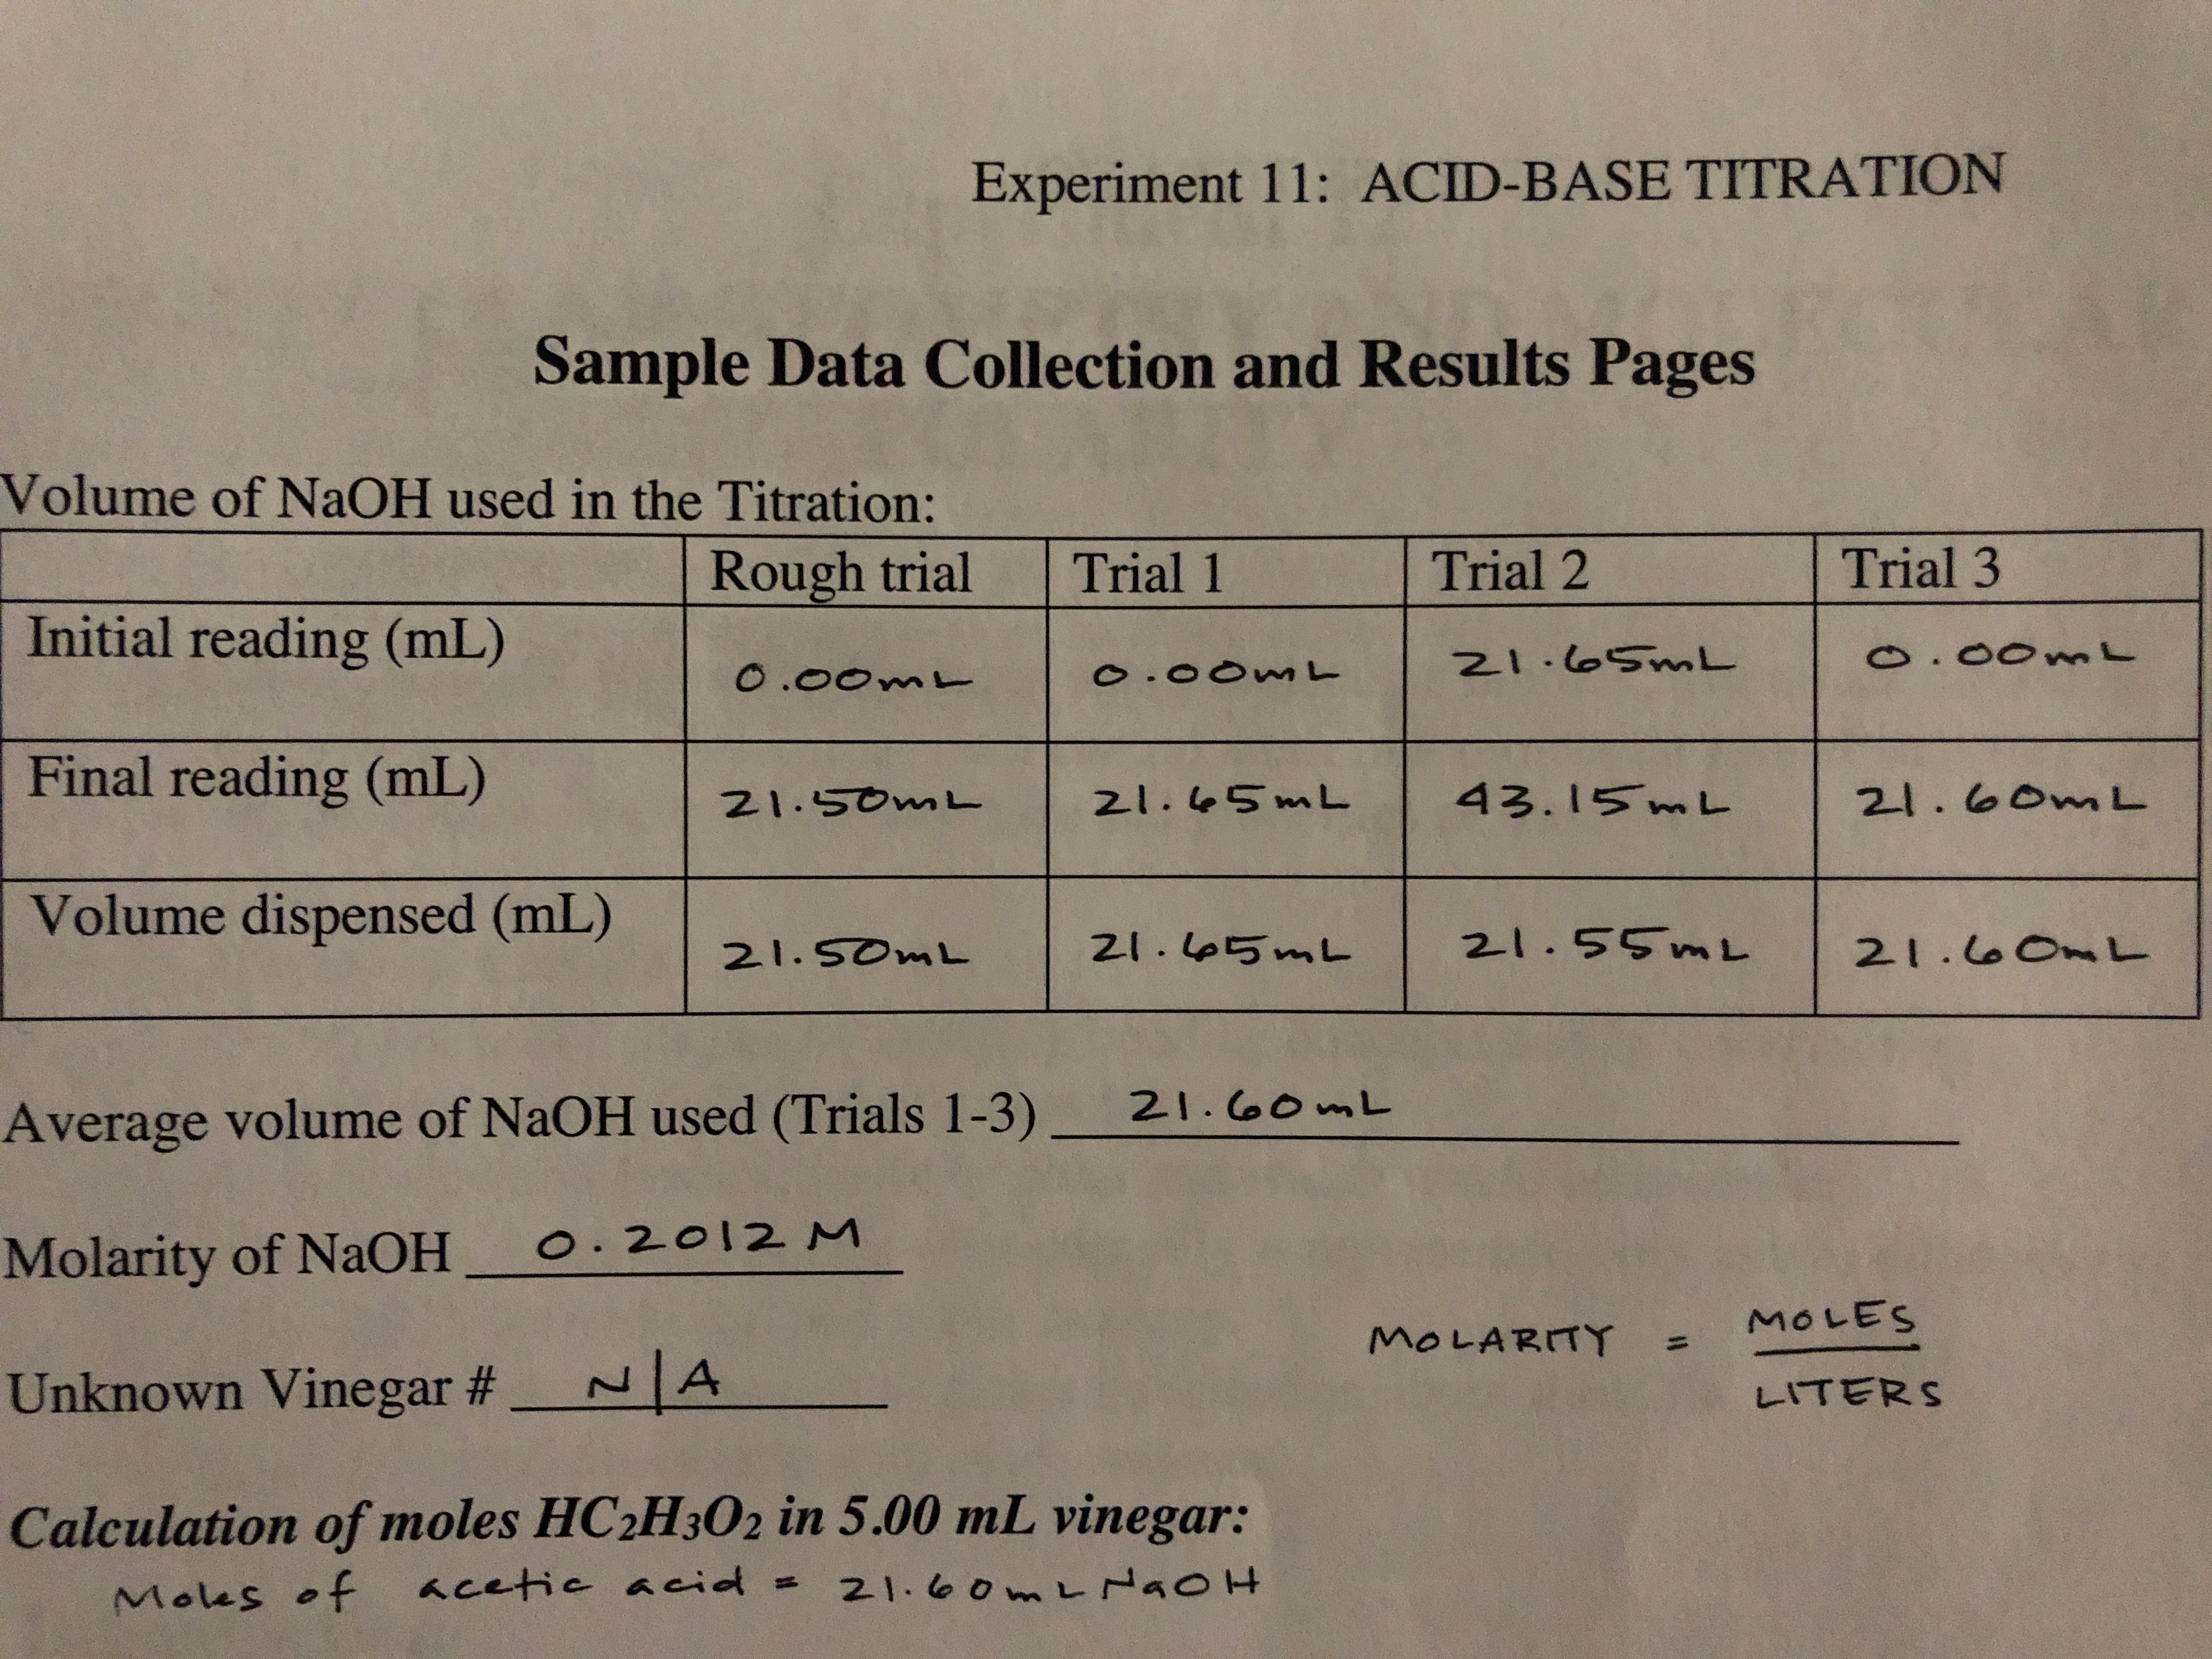 Experiment 11: ACID-BASE TITRATION Sample Data Collection and Results Pages Volume of NaOH used in the Titration: Trial 3 Rough trial Trial 2 Trial 1 Initial reading (mL) o.00mL 21.0SML O .0om o.00ML Final reading (mL) 43.15 mL 2l.6om L z1.45ML Z1.50ML Volume dispensed (mL) 21.55ML 21.Lo5mL 21.6OnL 21.SOML 21.OomL Average volume of NAOH used (Trials 1-3) O.2012 M Molarity of NaOH MOLES MOLARITY N A Unknown Vinegar # LITERS Calculation of moles HC2H302 in 5.00 mL vinegar: 21.6om L NaoH Moles of cetie acid